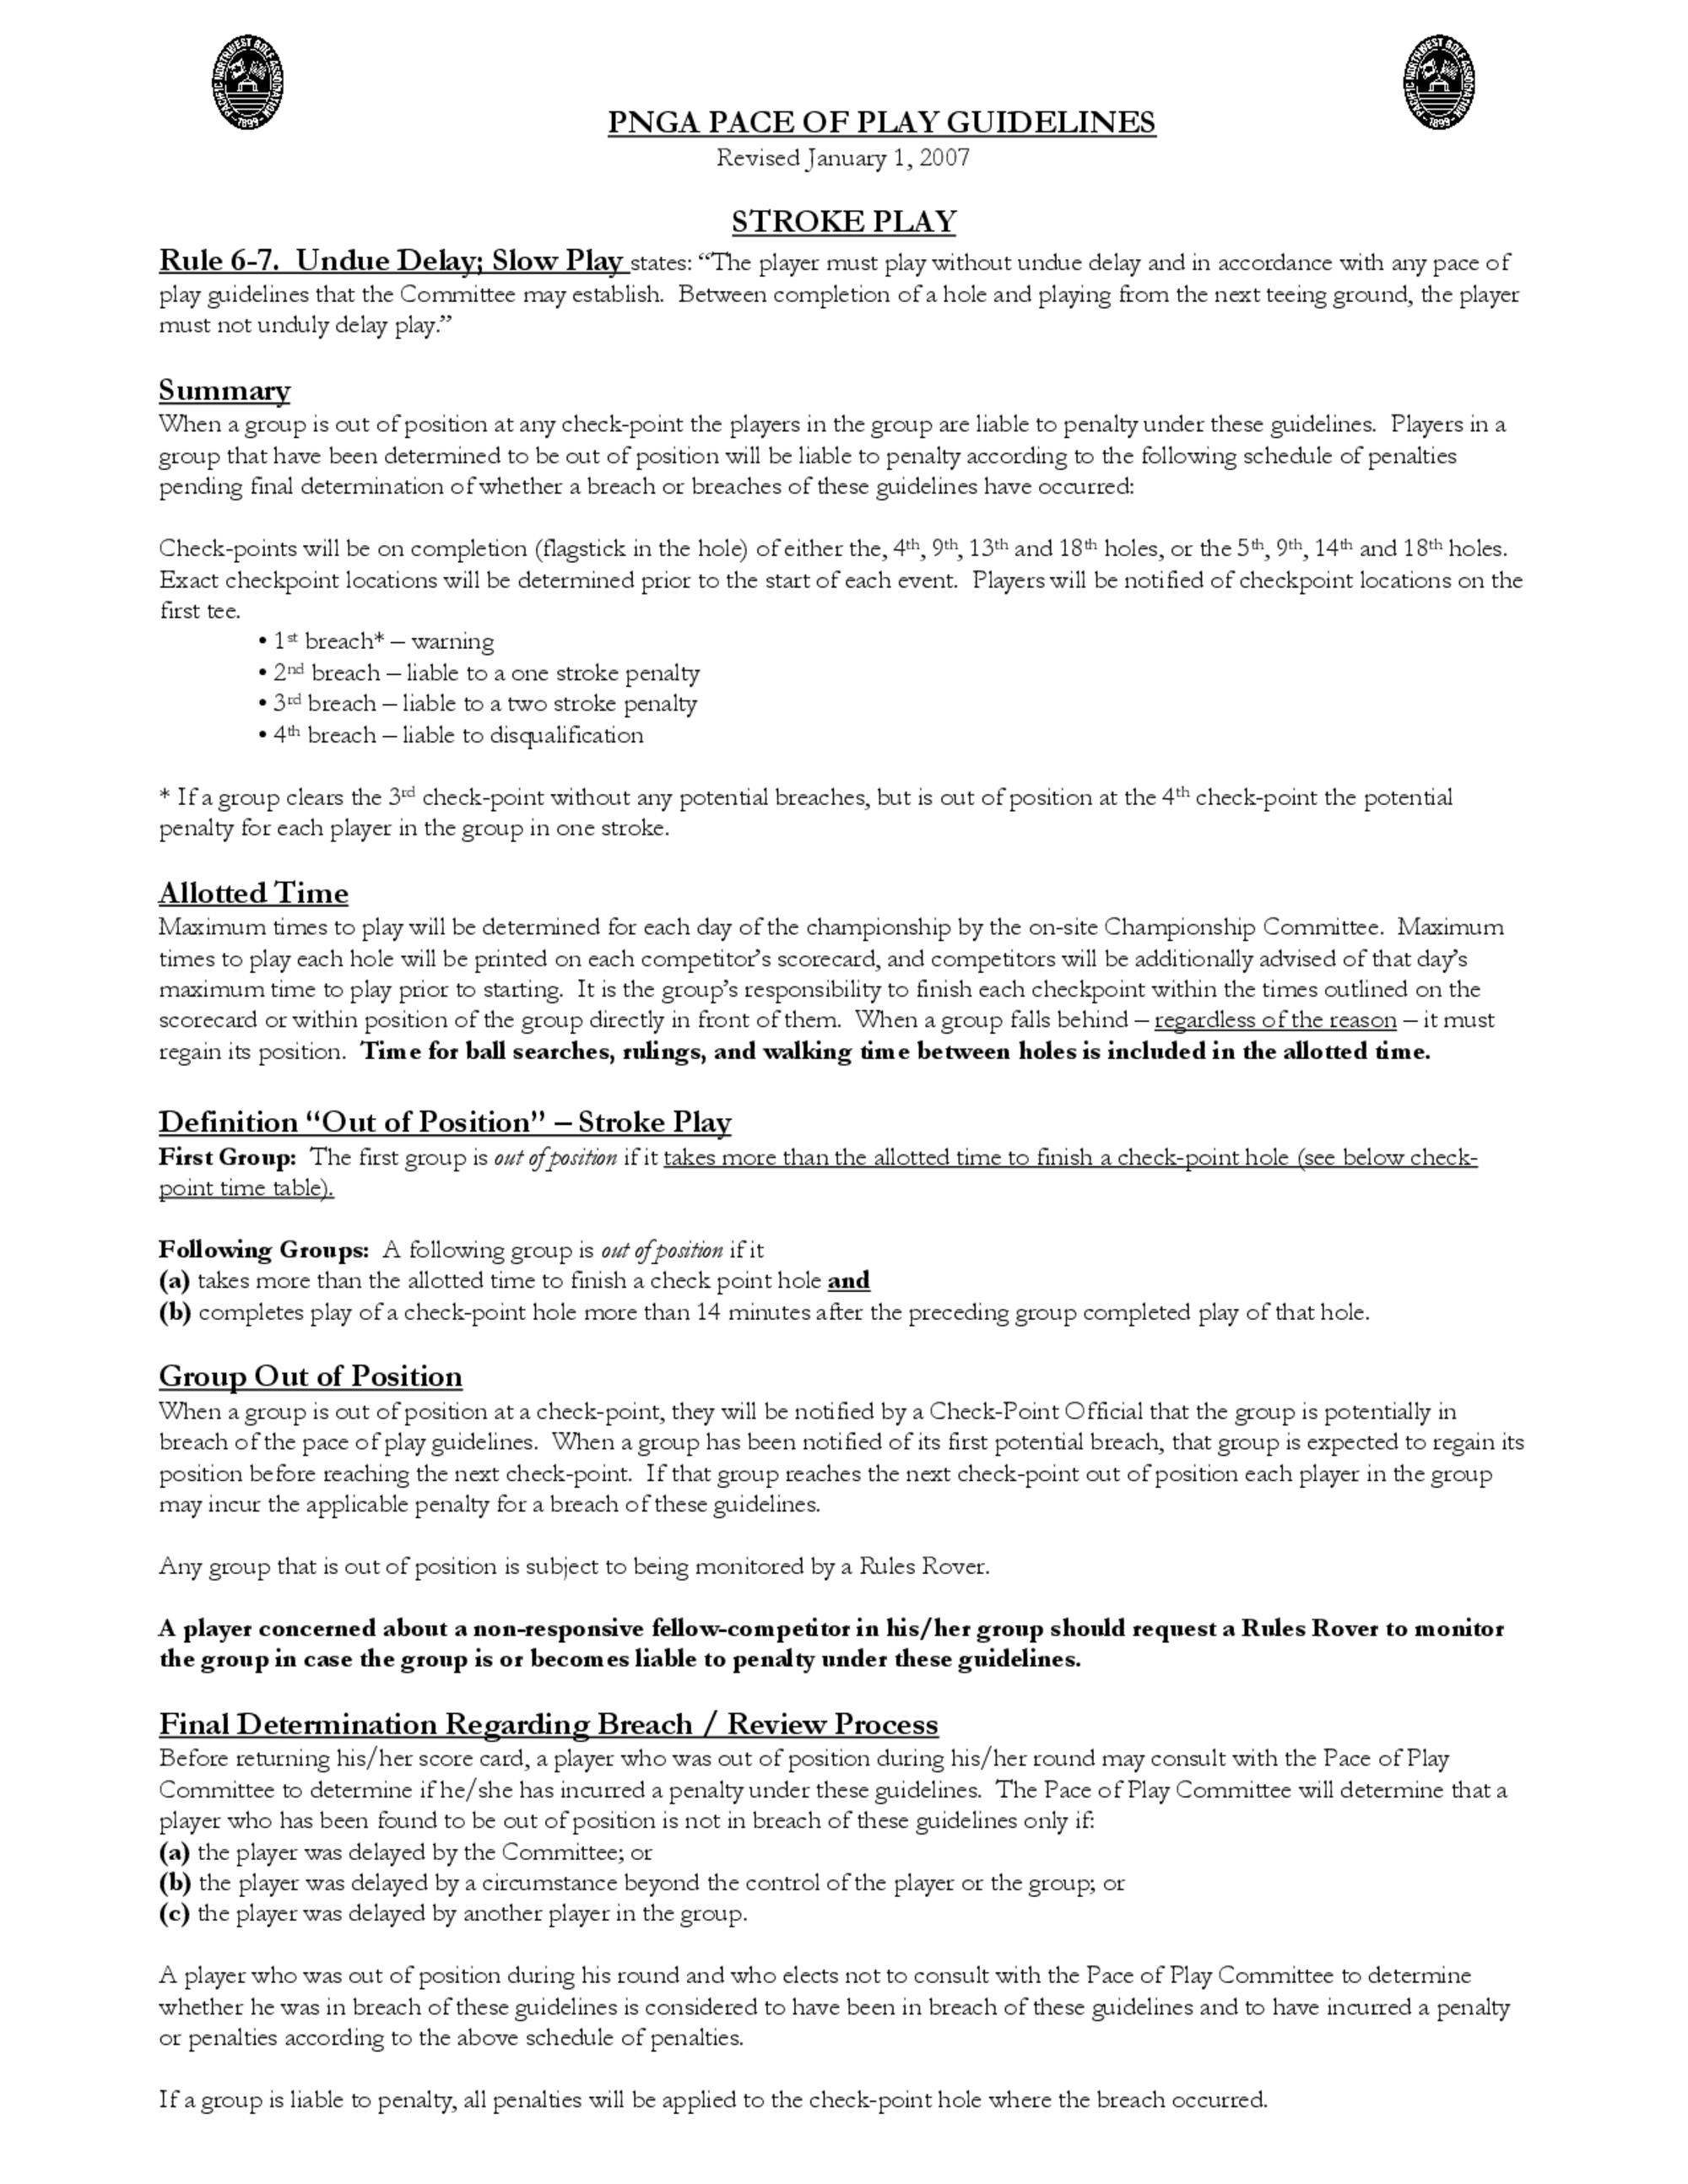 2007 pnga pace of play guidelines 1